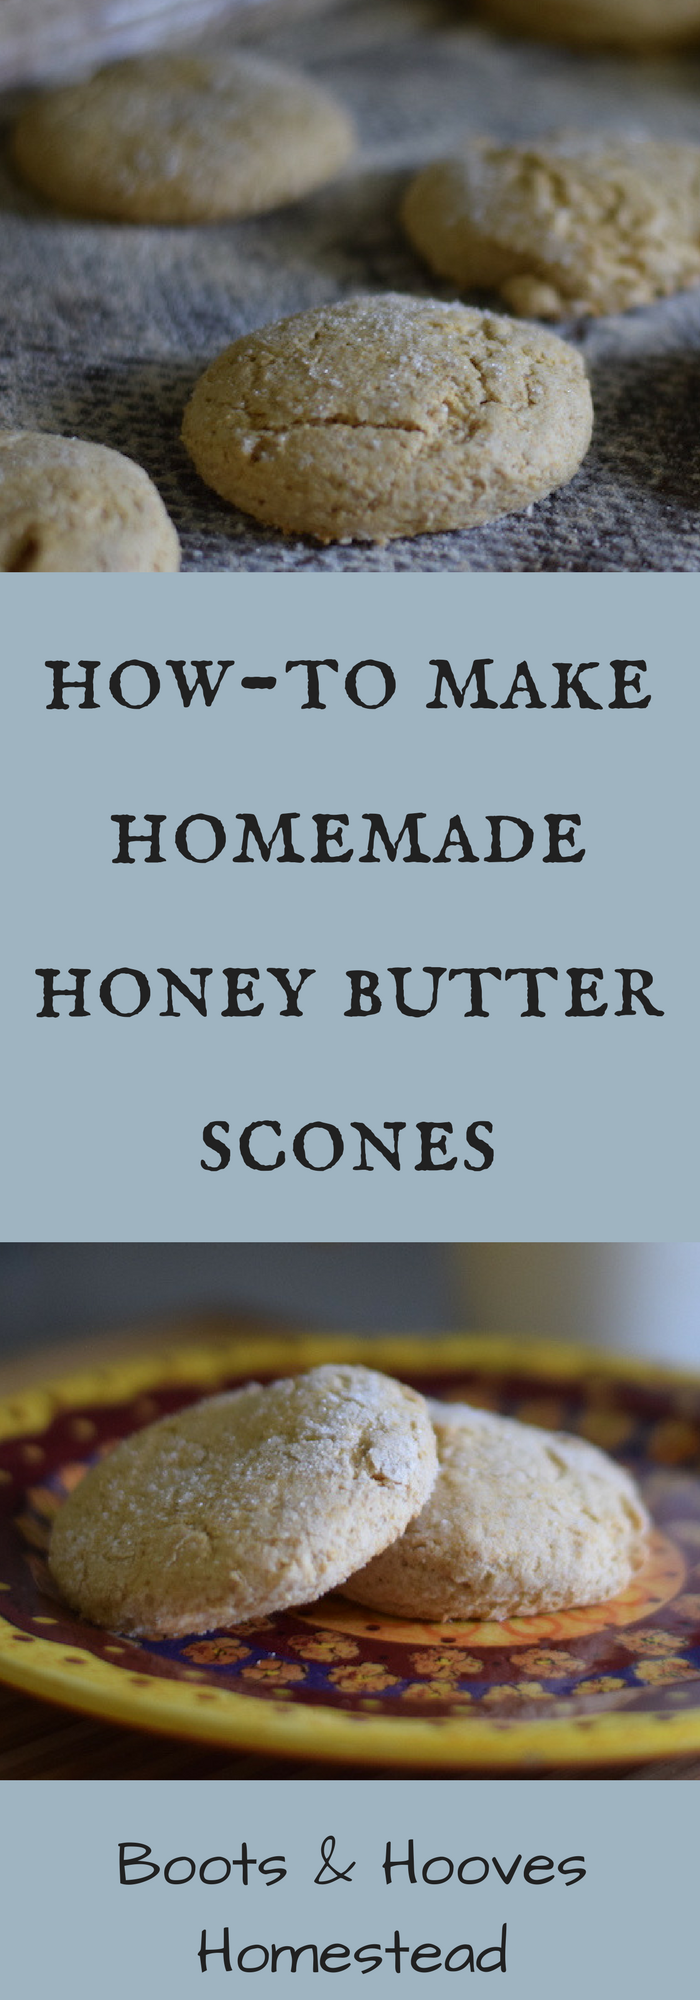 Honey Butter Scones Recipe With Images Homemade